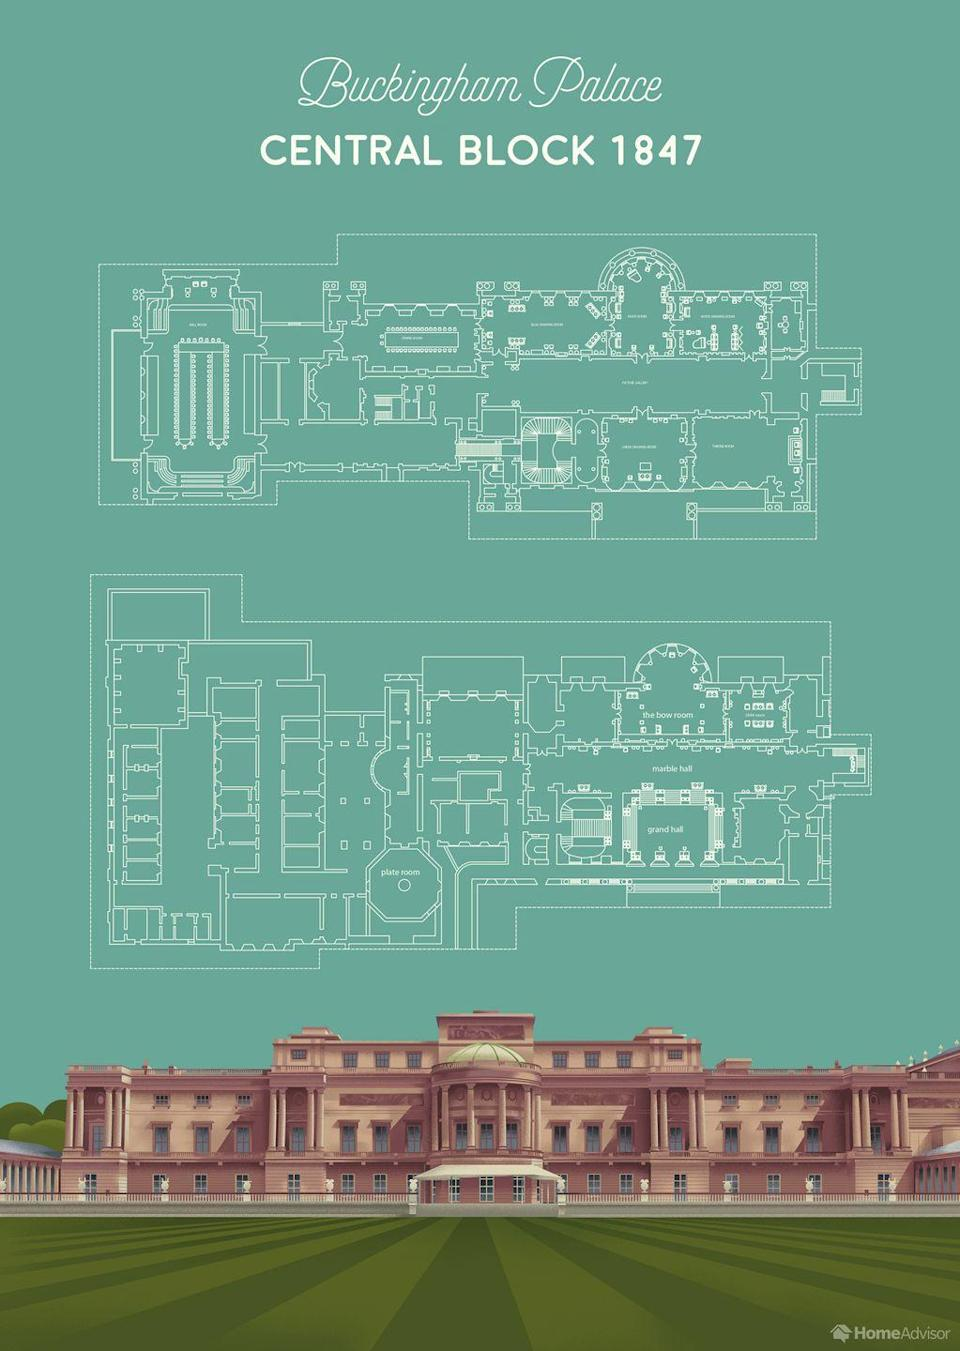 <p>The first thing you see when you enter Buckingham Palace, according to the HomeAdvisor floor plans, is the grand staircase, which is lined with luxurious red carpet and decorated with portraits of the royal family. </p><p>Upstairs, you'll find the Music Room (which has hosted several royal christenings, including Prince William's). And across the hallway, there's the iconic Green Drawing Room, where the Queen hosts her weekly meetings with the Prime Minister.</p>